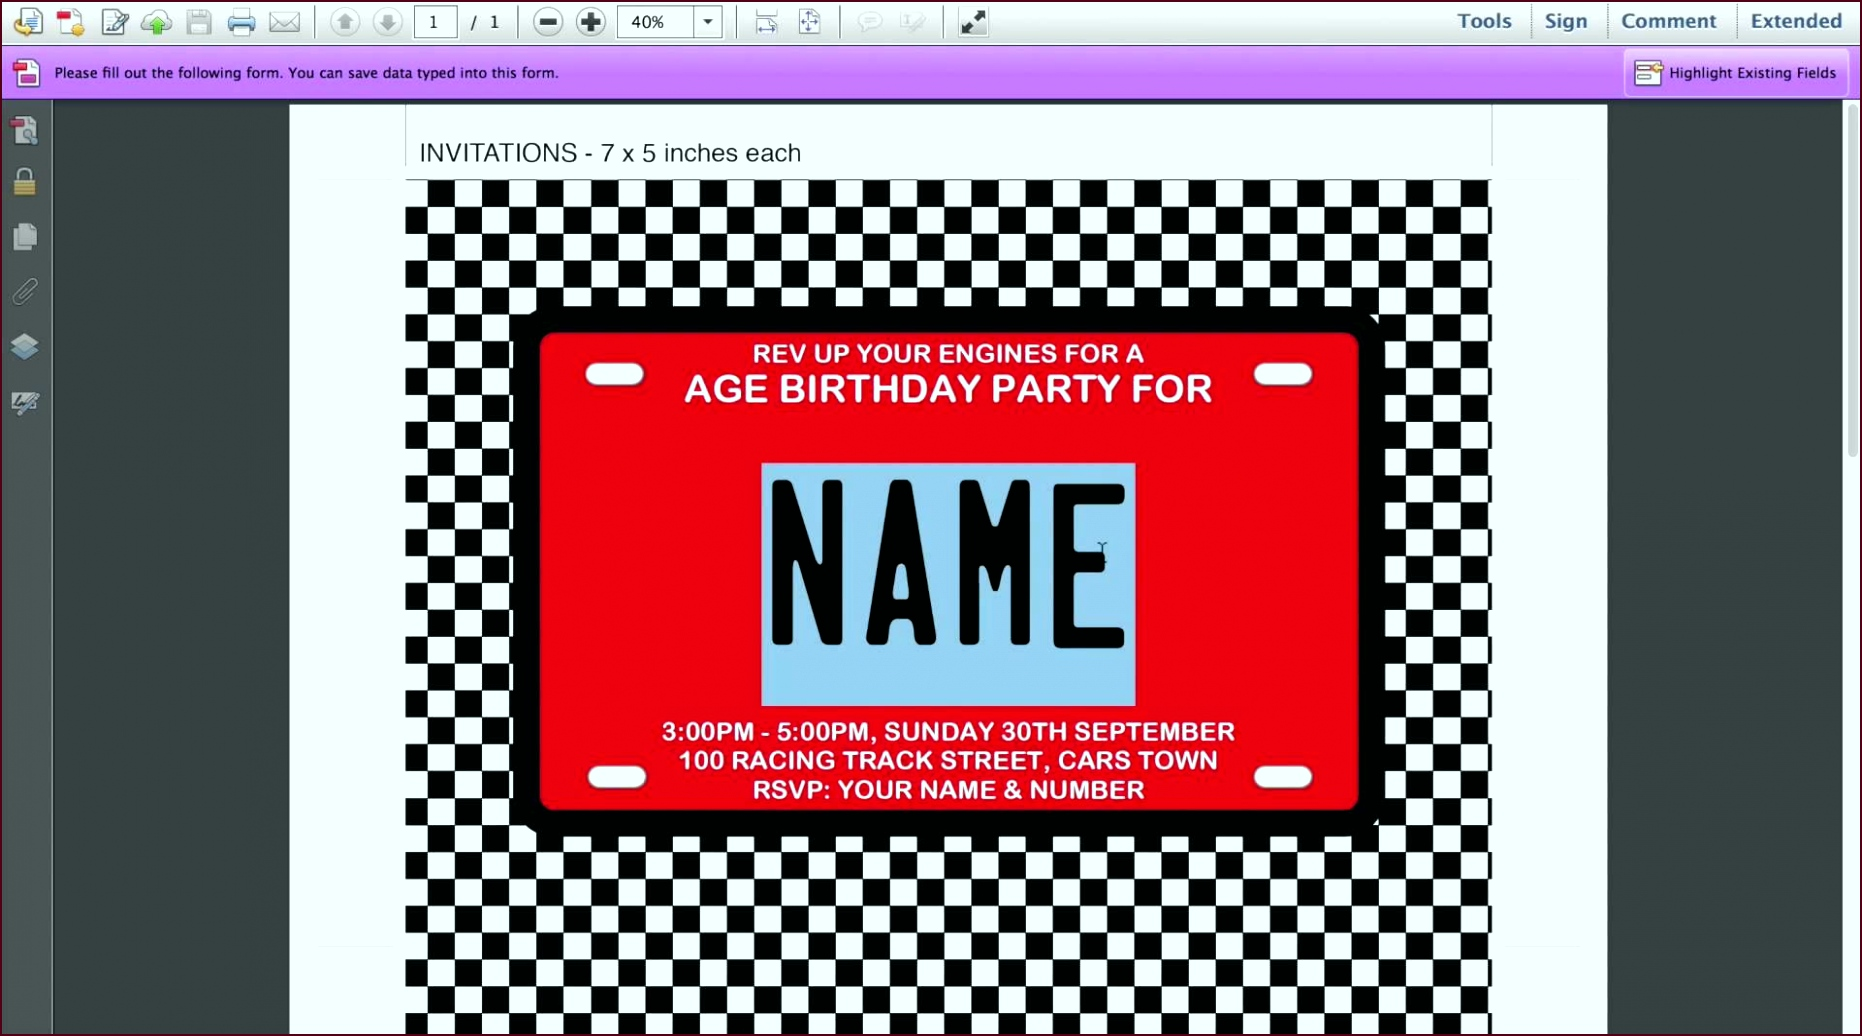 Invitations for Sleepover Party Templates New 15 Awesome 13th Birthday Party Invitation Templates Resume iotwu